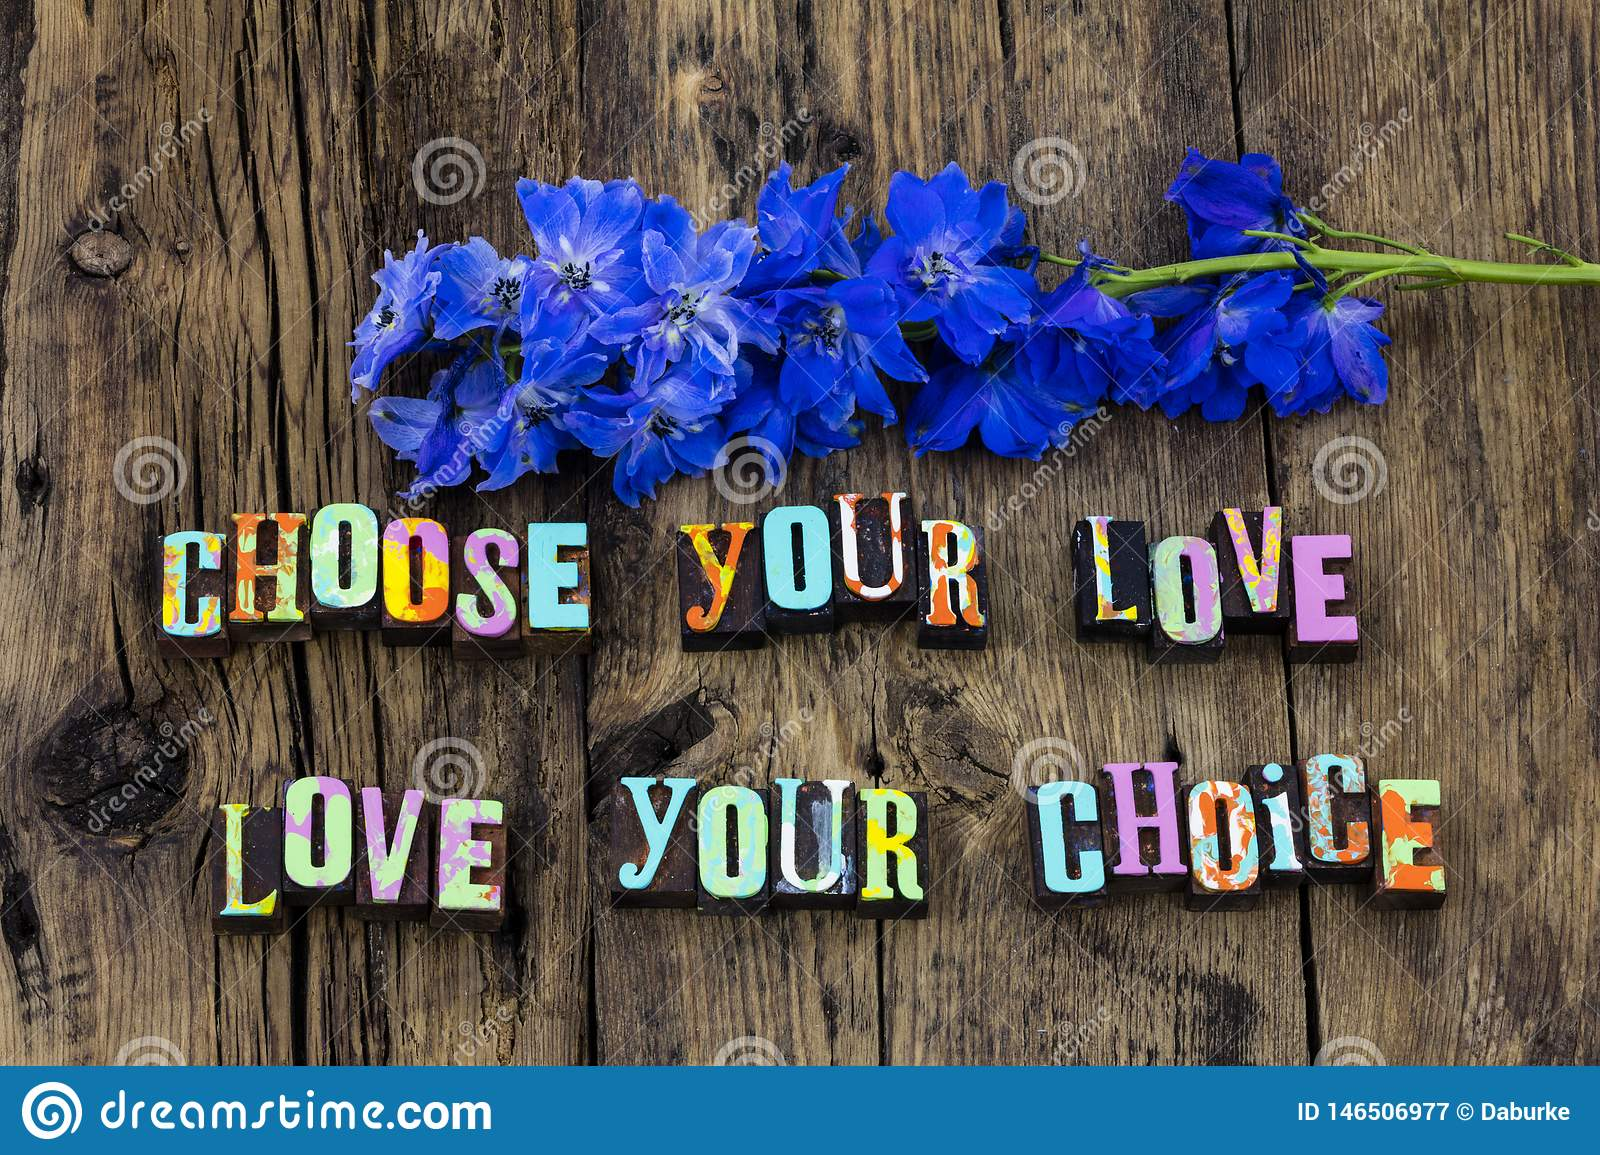 Choose love choice live life together forever happy happiness